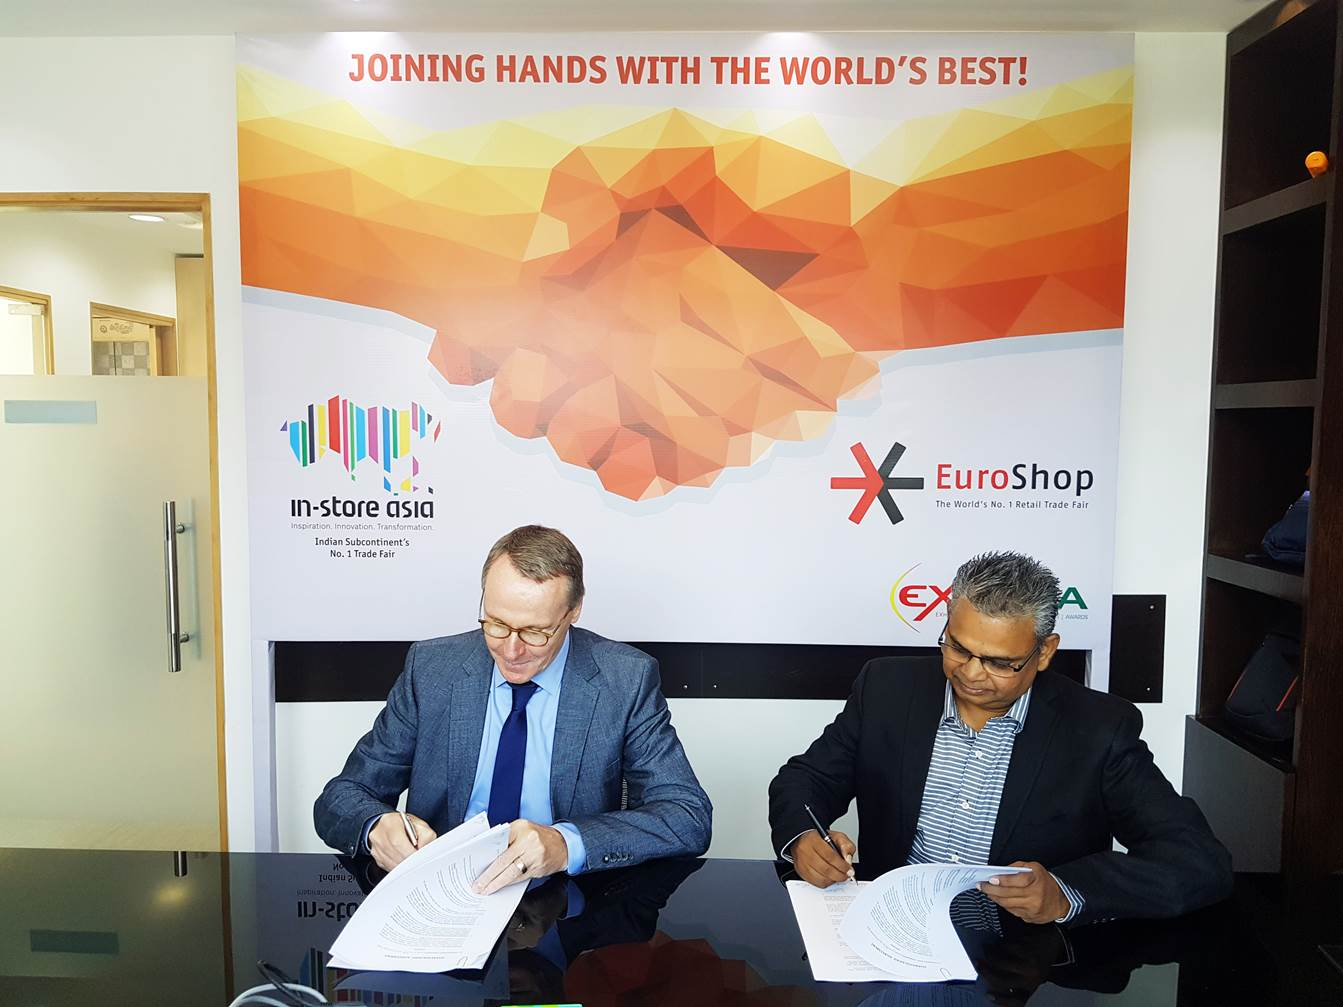 Messe Düsseldorf, EuroShop, In-store Asia, Thought Shows & Events Pvt Ltd., Mall of Europe powered by EuroShop, Vasant Jante, Hans Werner Reinhard